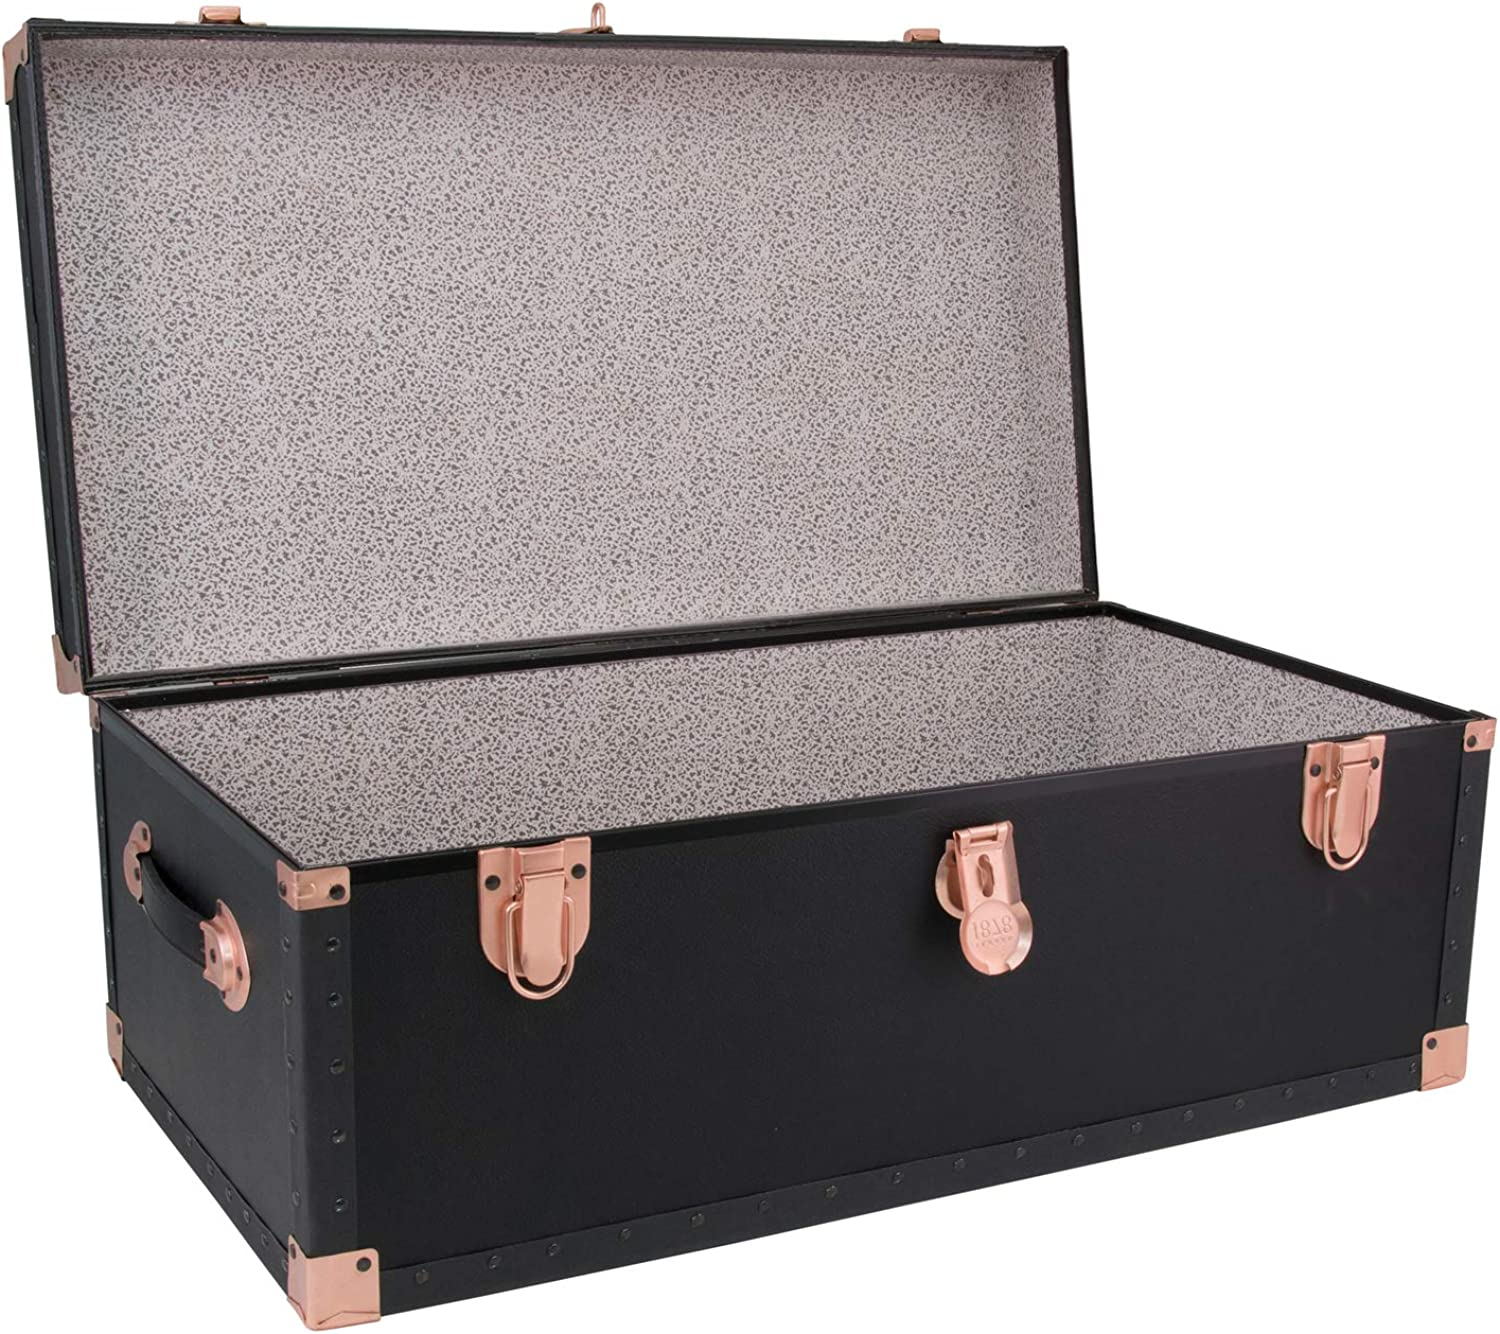 Black//Rose Gold Seward Trunk Classic Collection 31 Footlocker Trunk